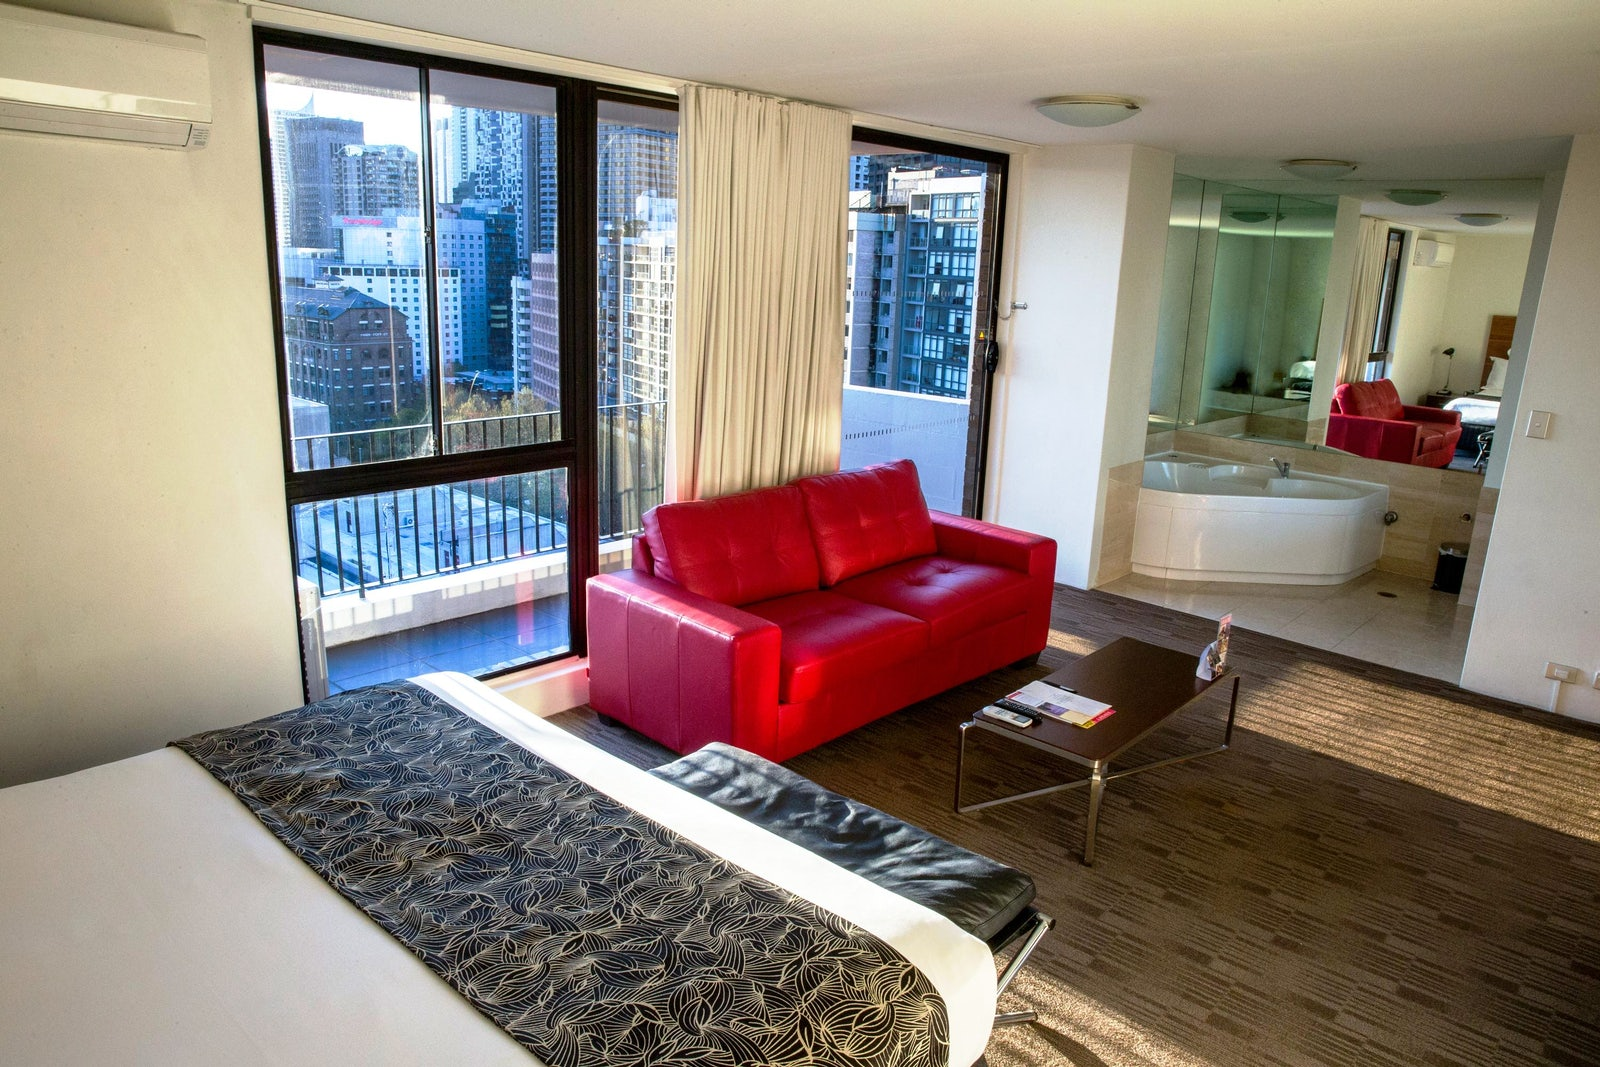 A photo from the spa room at the Cambridge Hotel in Surry Hills Sydney